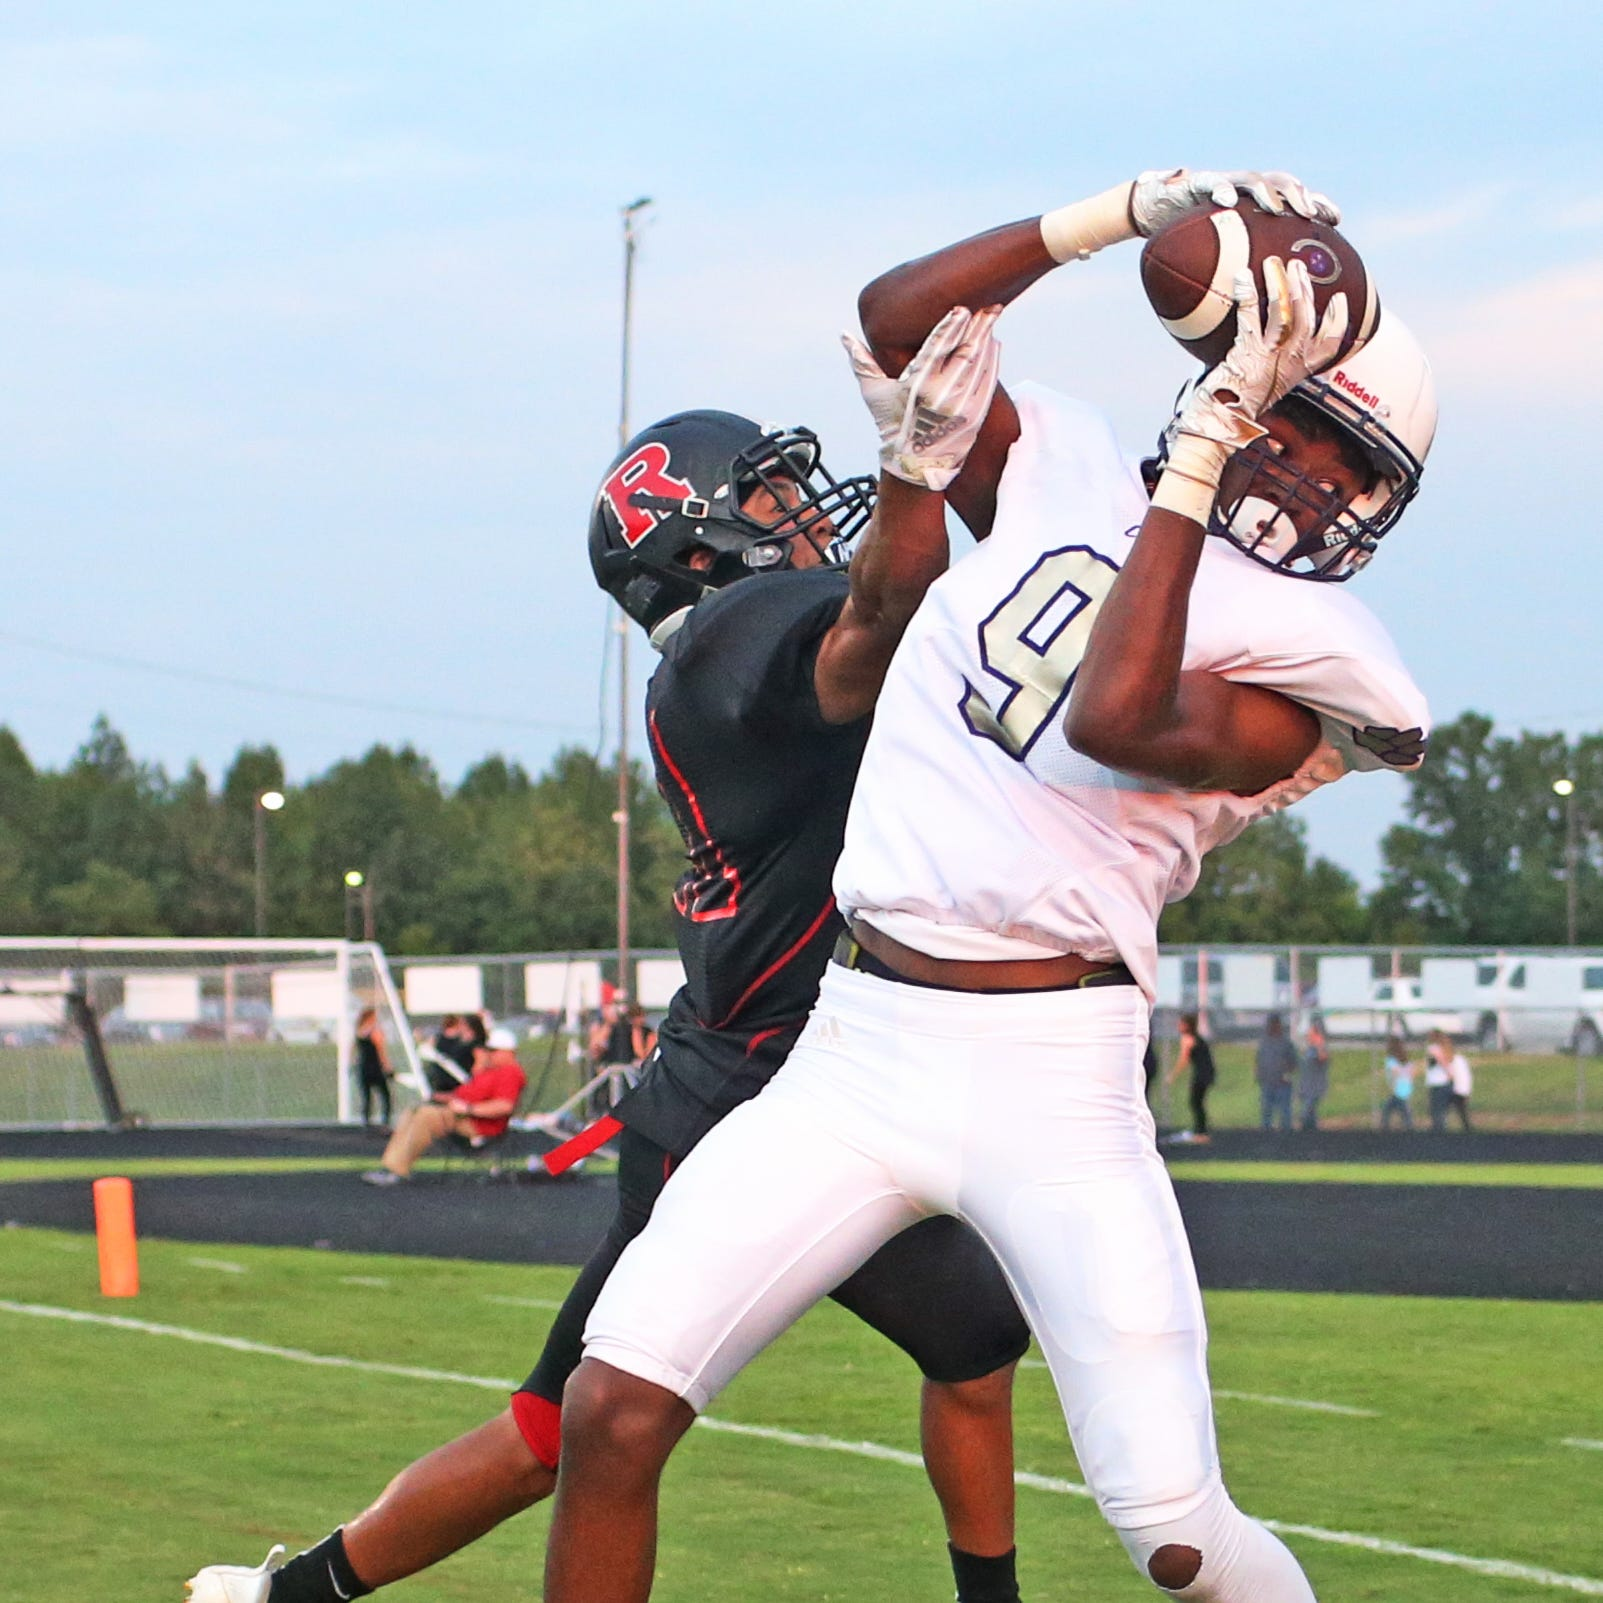 Clarksville's Neko Clark (9) pulls in a touchdown catch over Rossview's KJ Montague (21) during the first game of the season at Rossview High School Friday, Aug. 17, 2018, in Clarksville, Tenn.